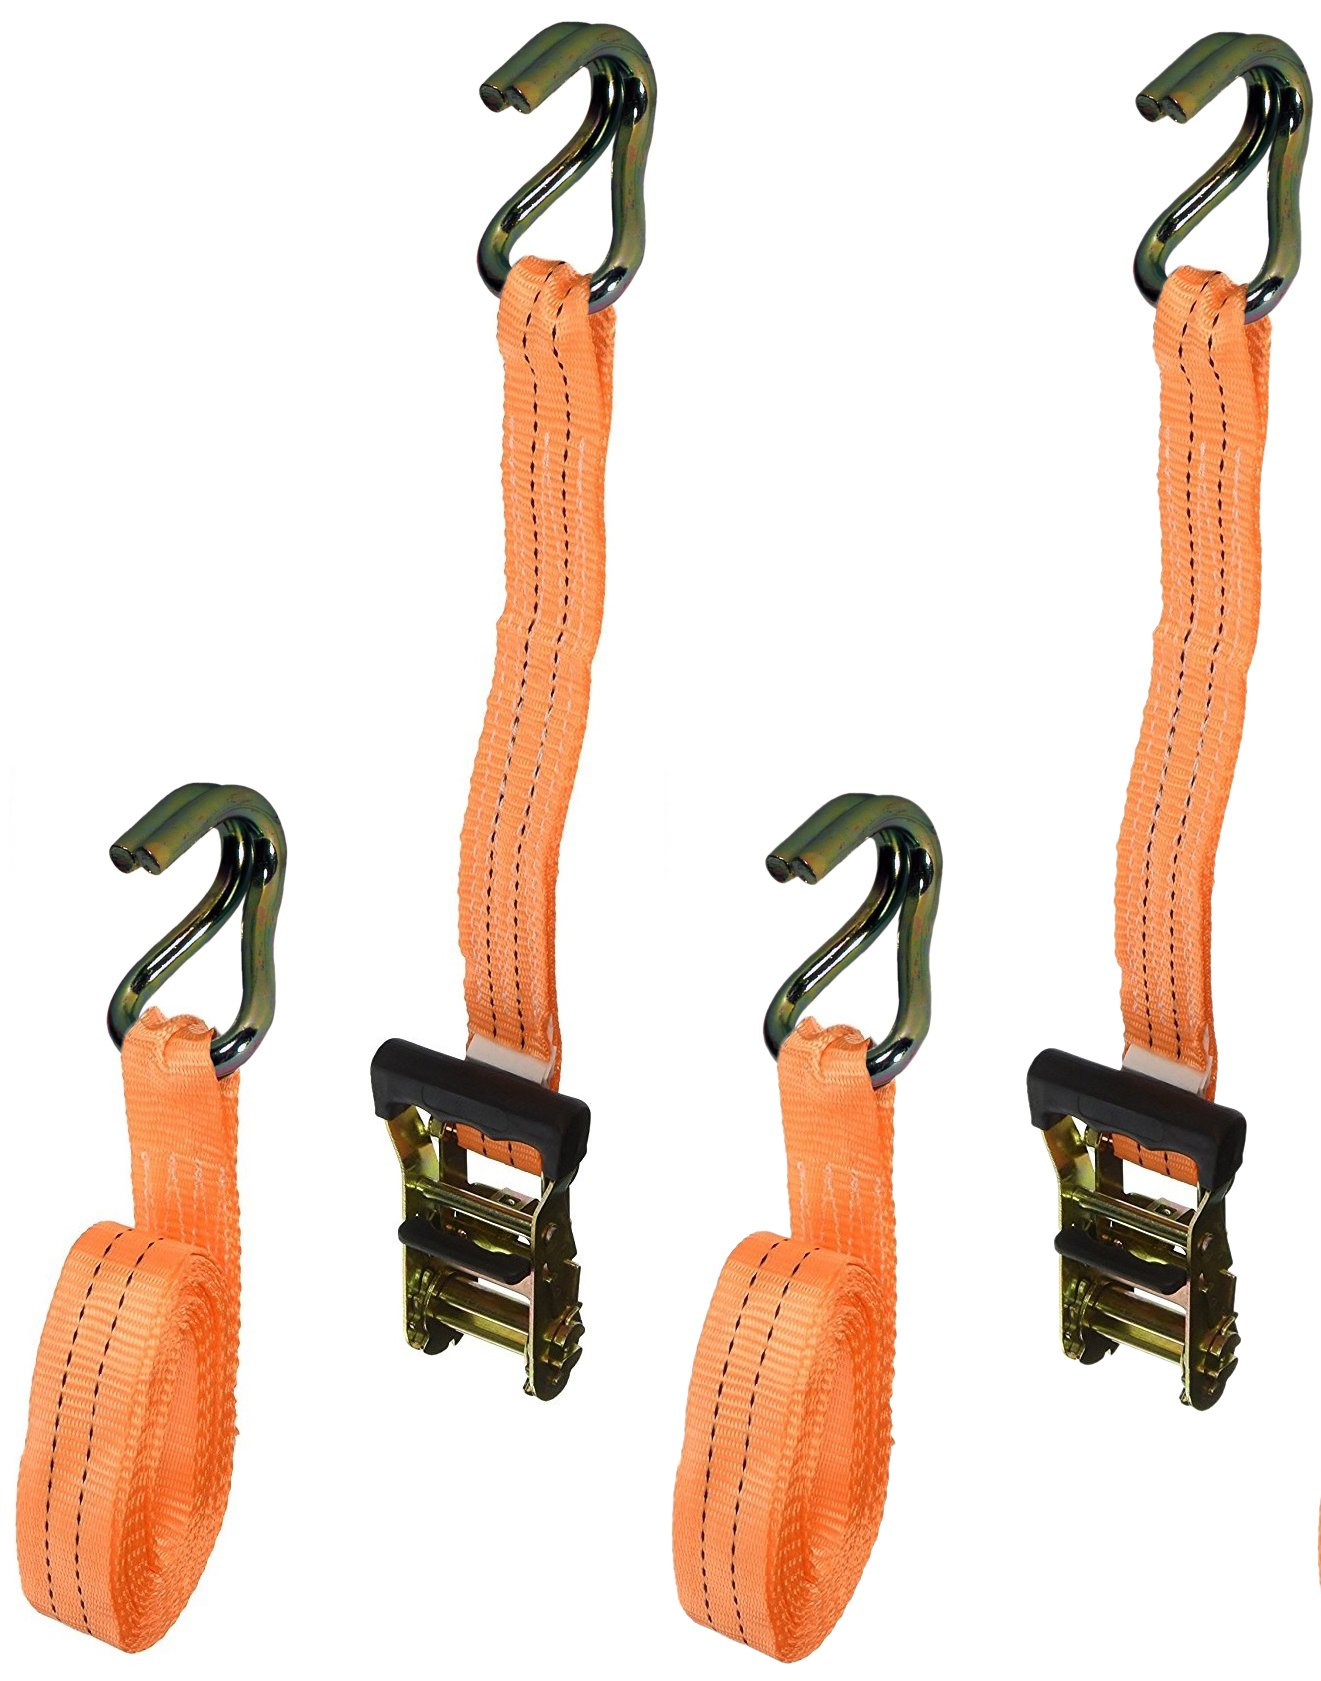 Badass Moto Heavy Duty Ratchet Straps Tie Downs 2-Pack - 4400 Break Str 1.5 in X 15 foot - Motorcycle Tie Down Straps - Truck Cargo - ATV Trailer - Wide Padded Grips, Duffle Bag, Ratchet Strap Keepers by Badass Motogear